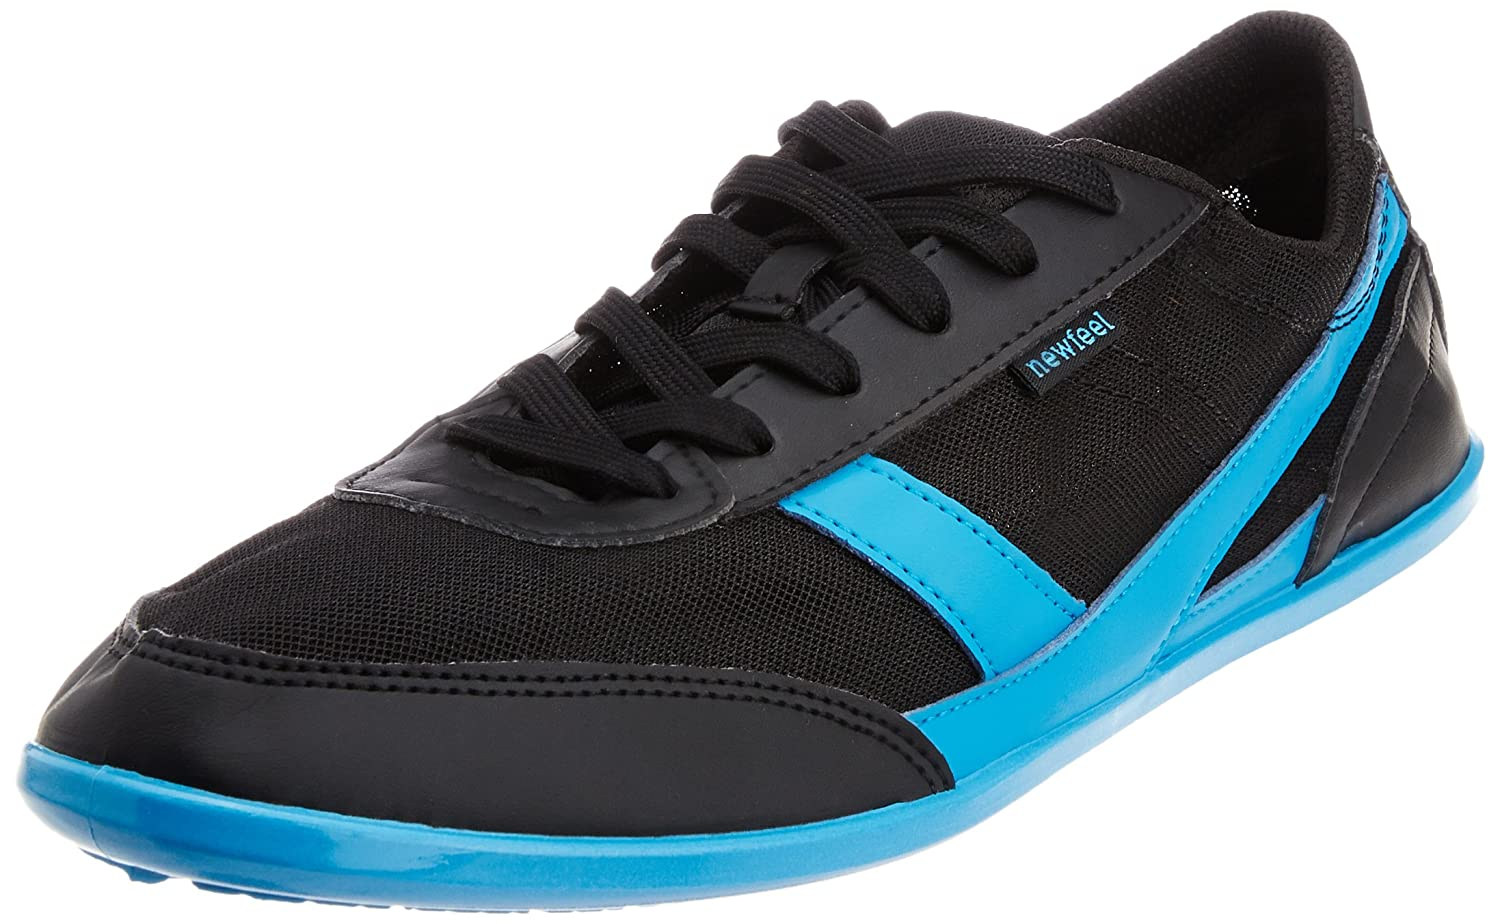 d98dcb24f3e Decathlon Men's Black and Blue Canvas Sneakers - 11 UK: Buy Online at Low  Prices in India - Amazon.in